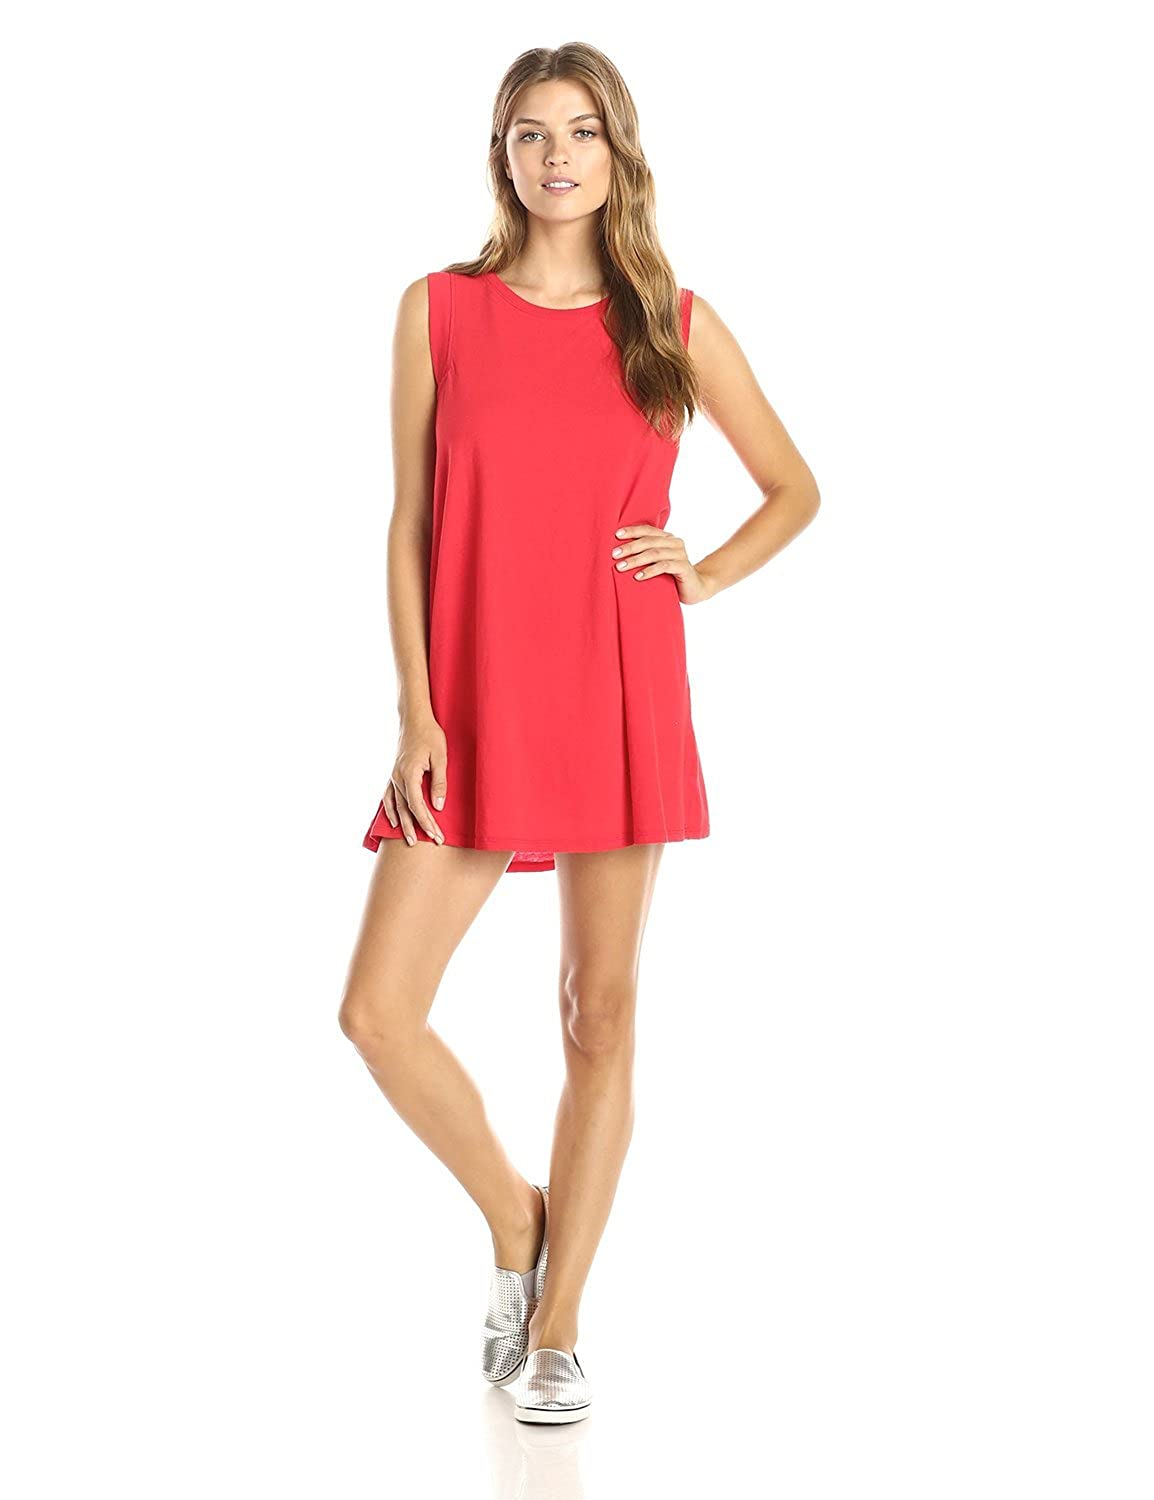 Metalopituy Women's Party Dress Red